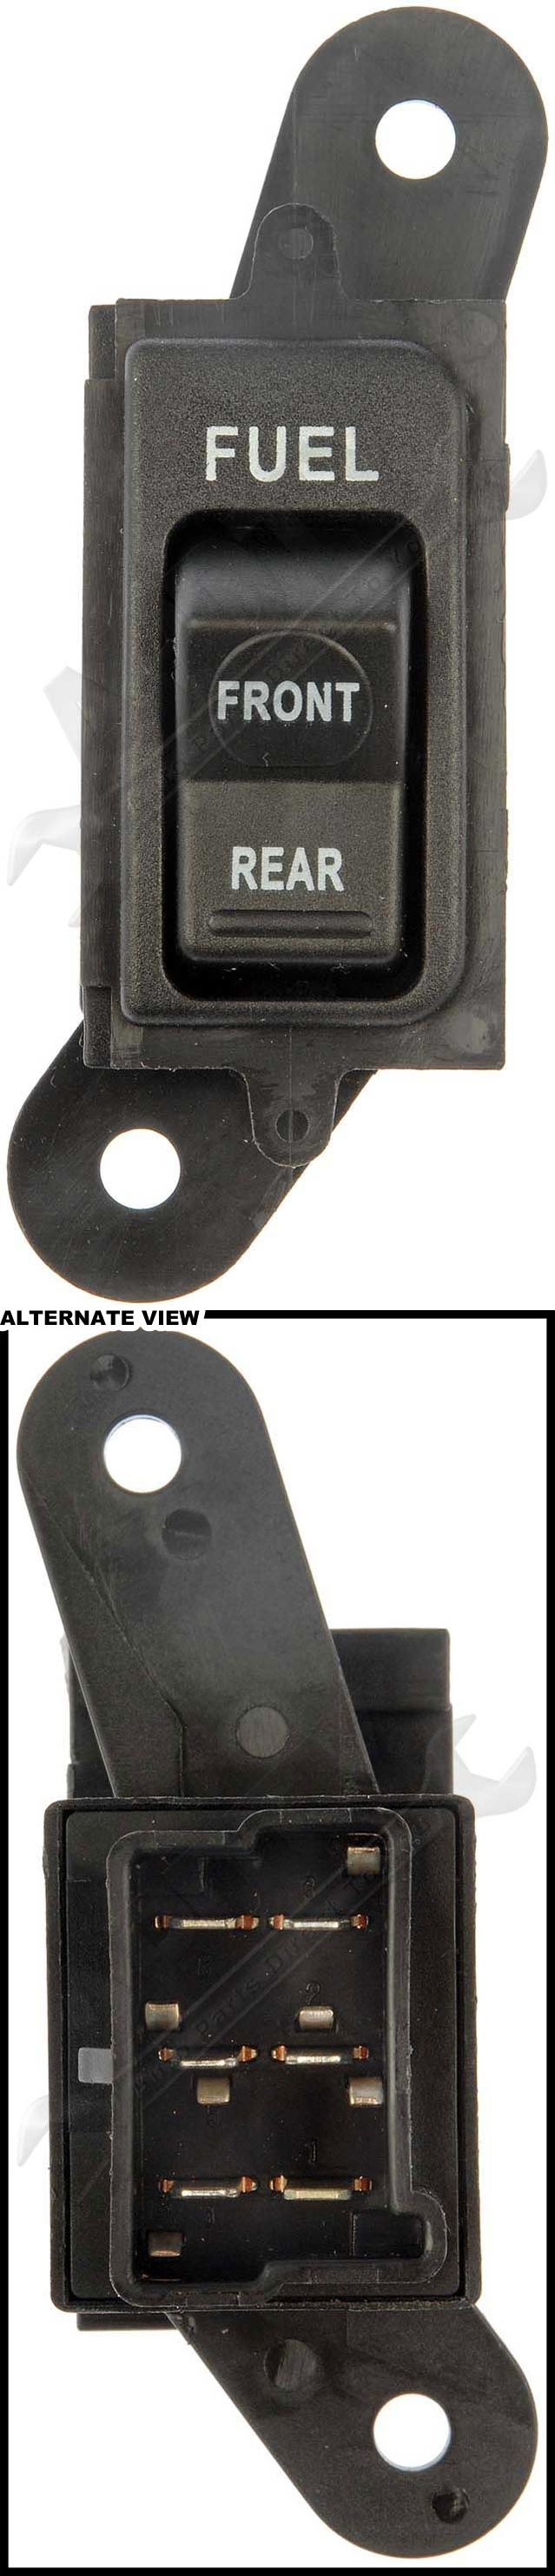 Apdty 012412 Fuel  Gas Tank Selector Switch